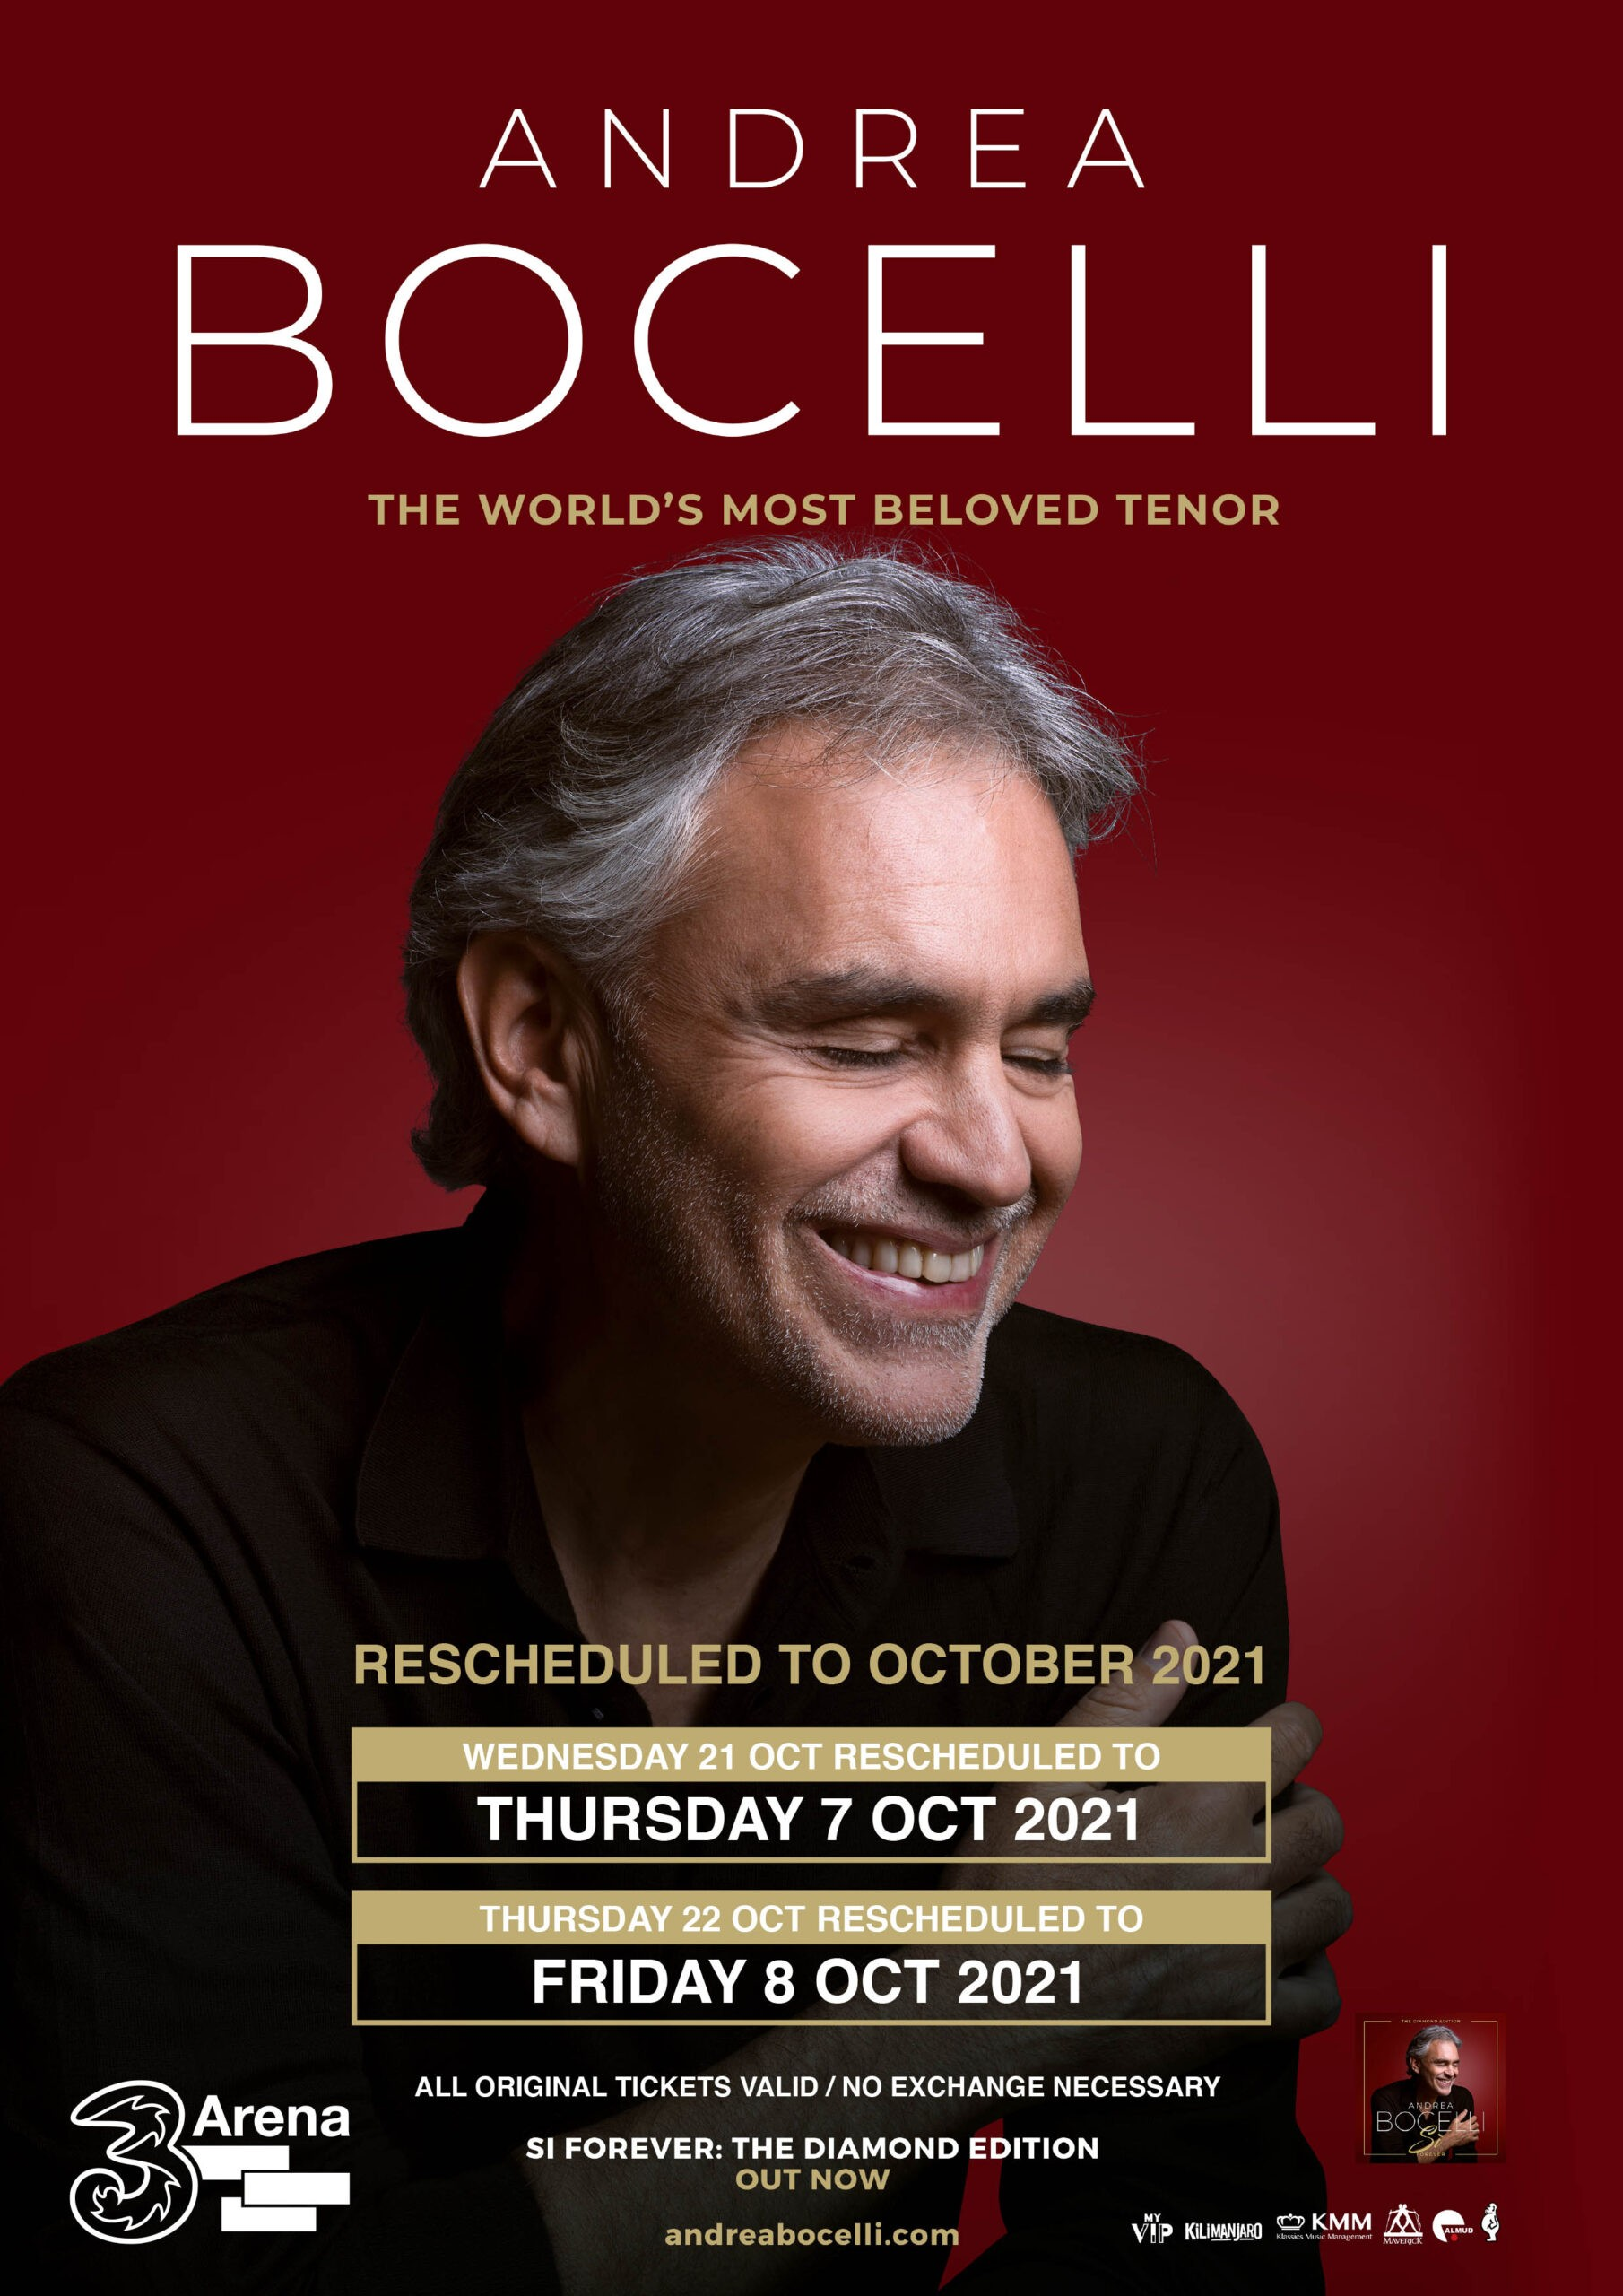 ANDREA BOCELLI CONFIRMS NEW ALBUM AND EXTRA TICKETS RELEASED FOR SALE FOR 3ARENA CONCERTS